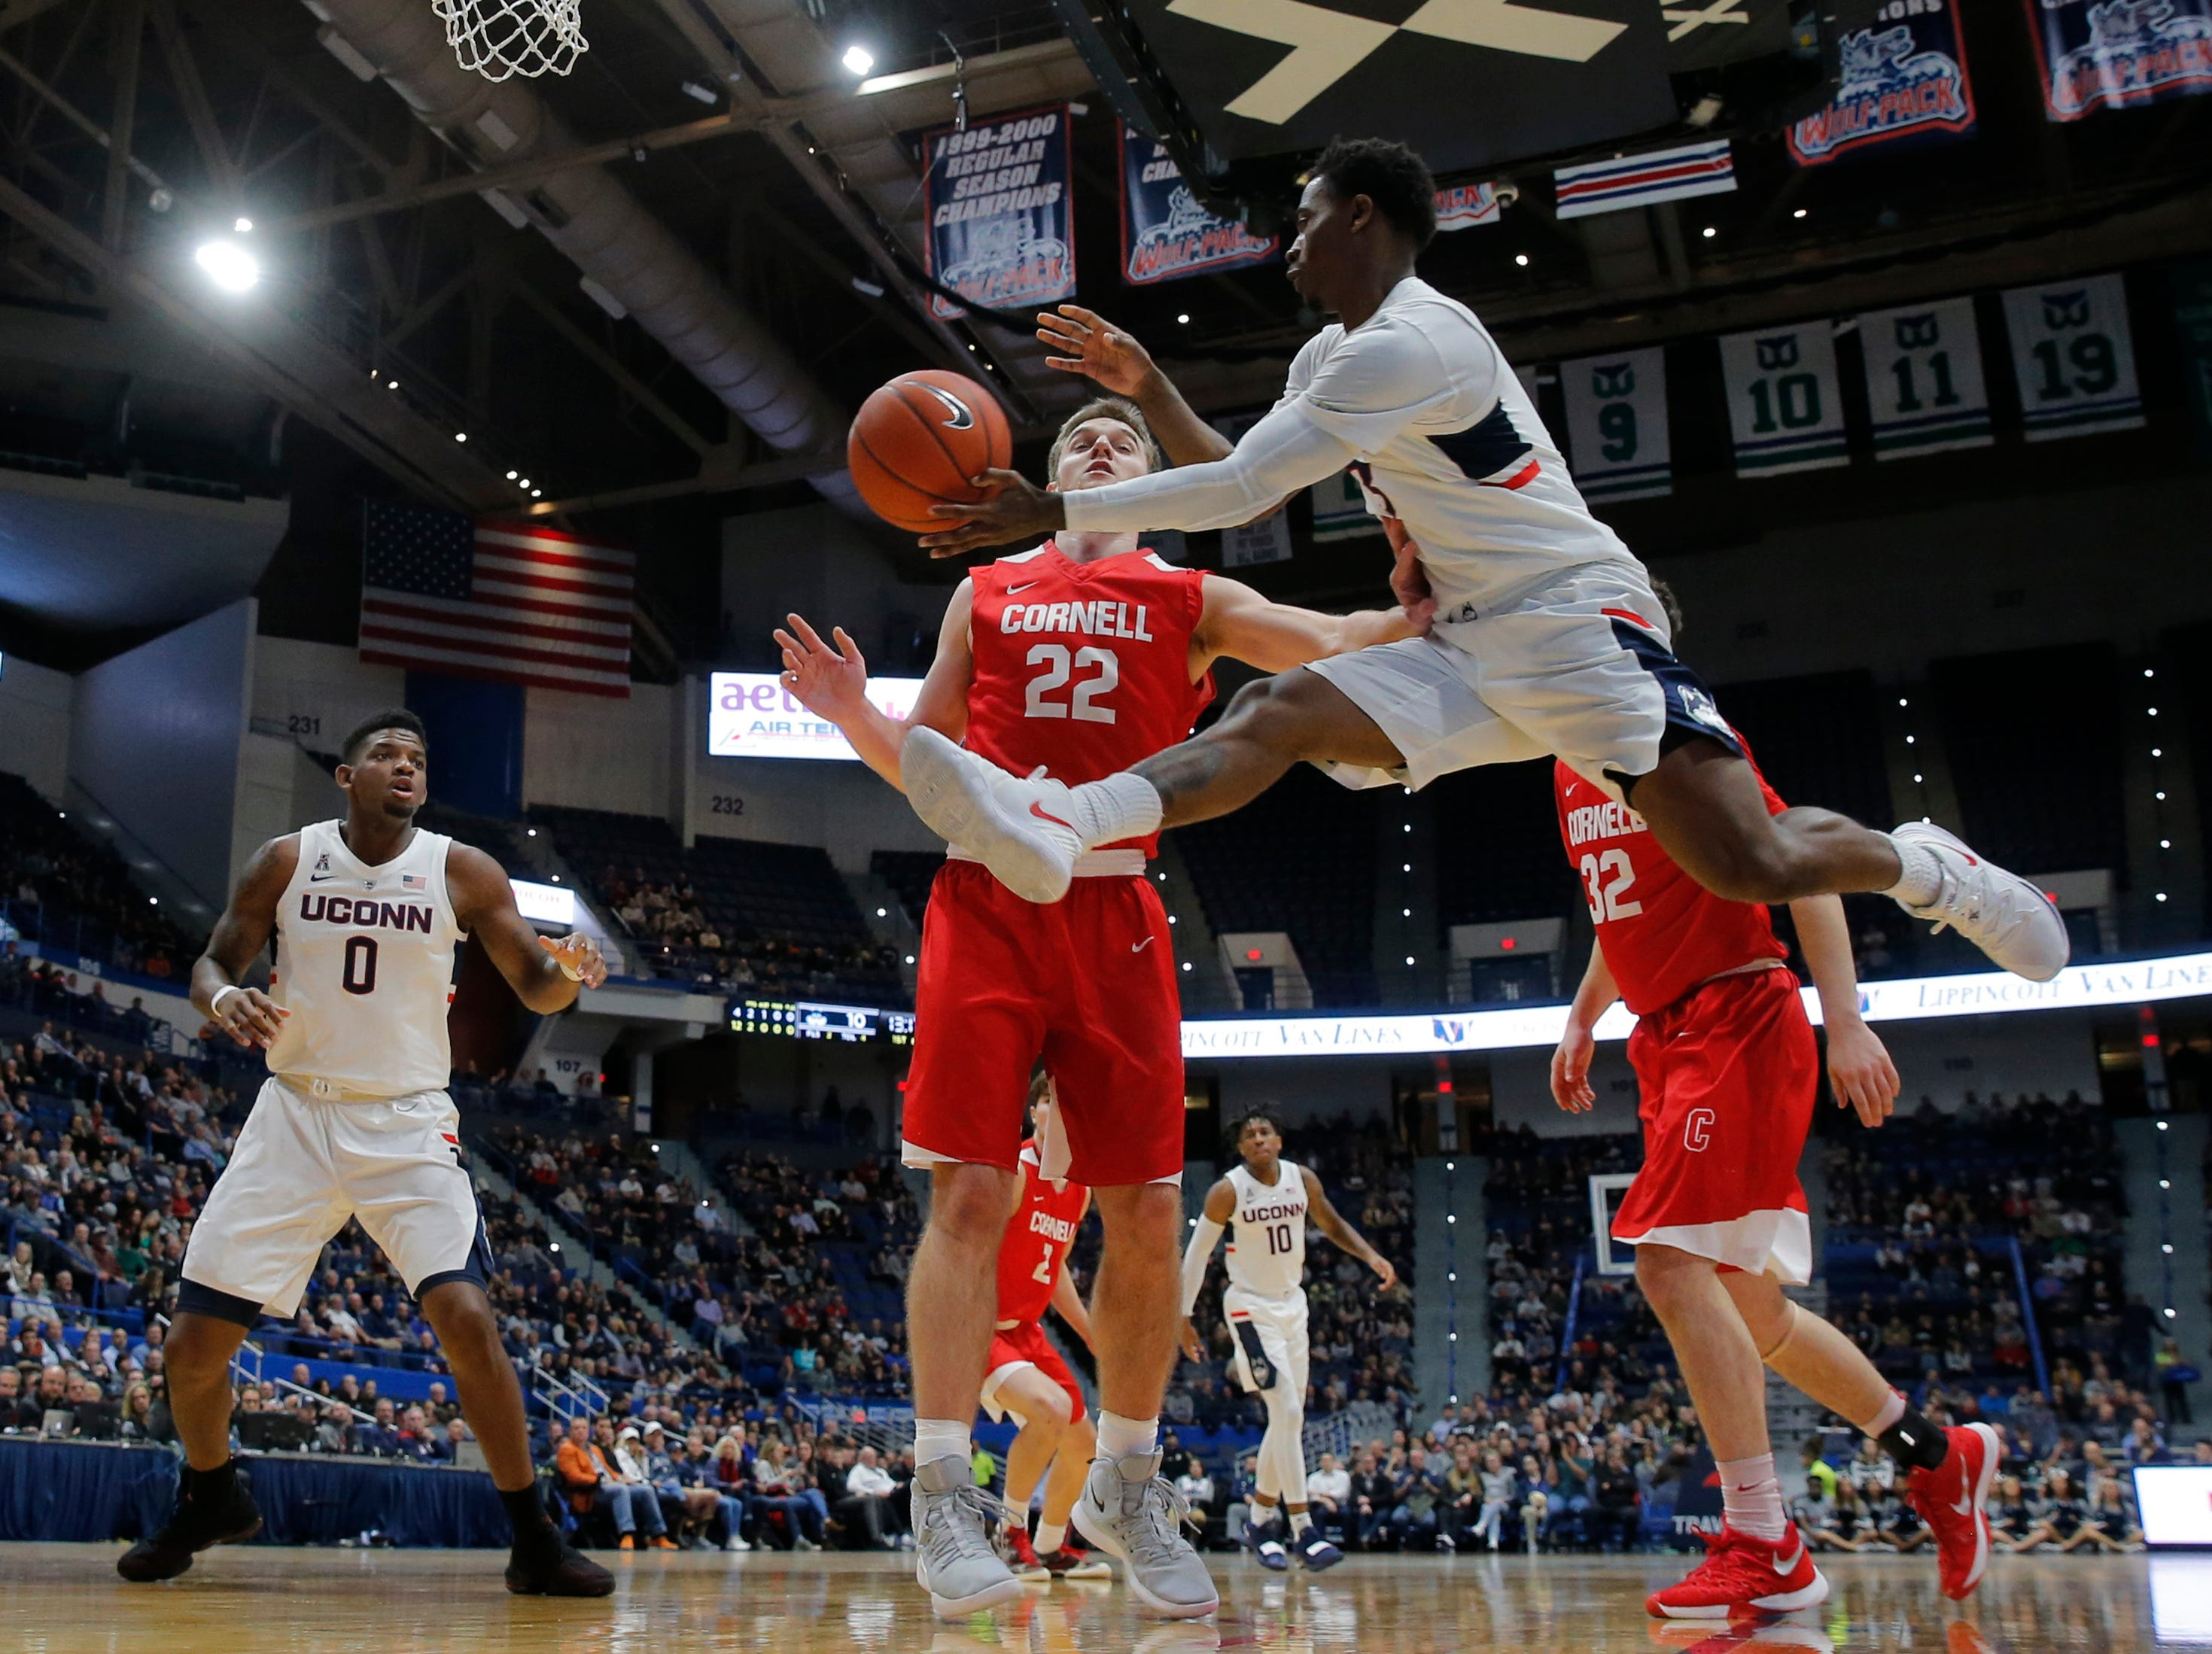 Nov 20, 2018; Storrs, CT, USA; Connecticut Huskies guard Alterique Gilbert (3) passes the ball against Cornell Big Red forward Josh Warren (22) in the first half at XL Center. Mandatory Credit: David Butler II-USA TODAY Sports